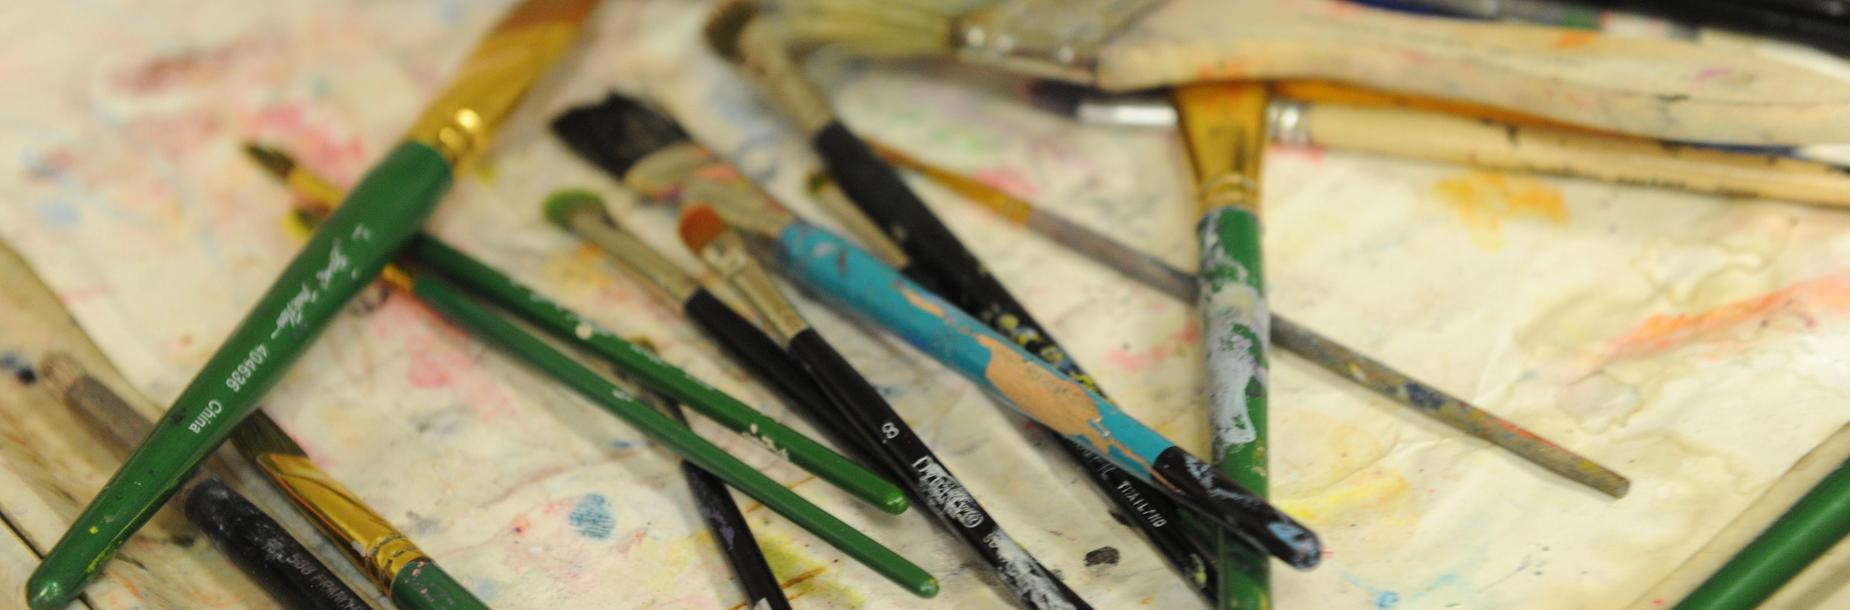 Photo of art and paint brushes